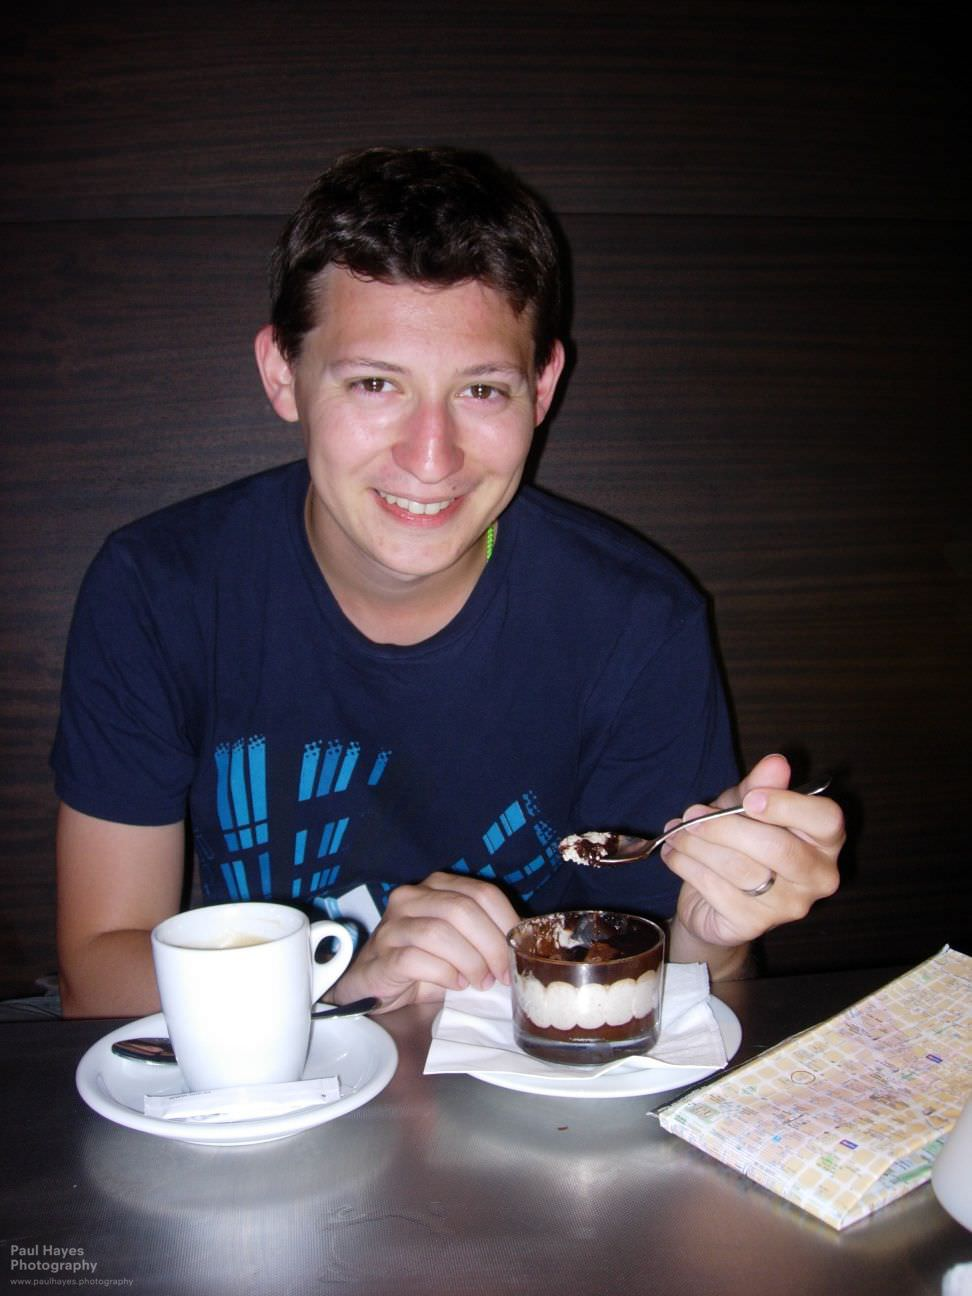 Paul with his almond chocolate dessert